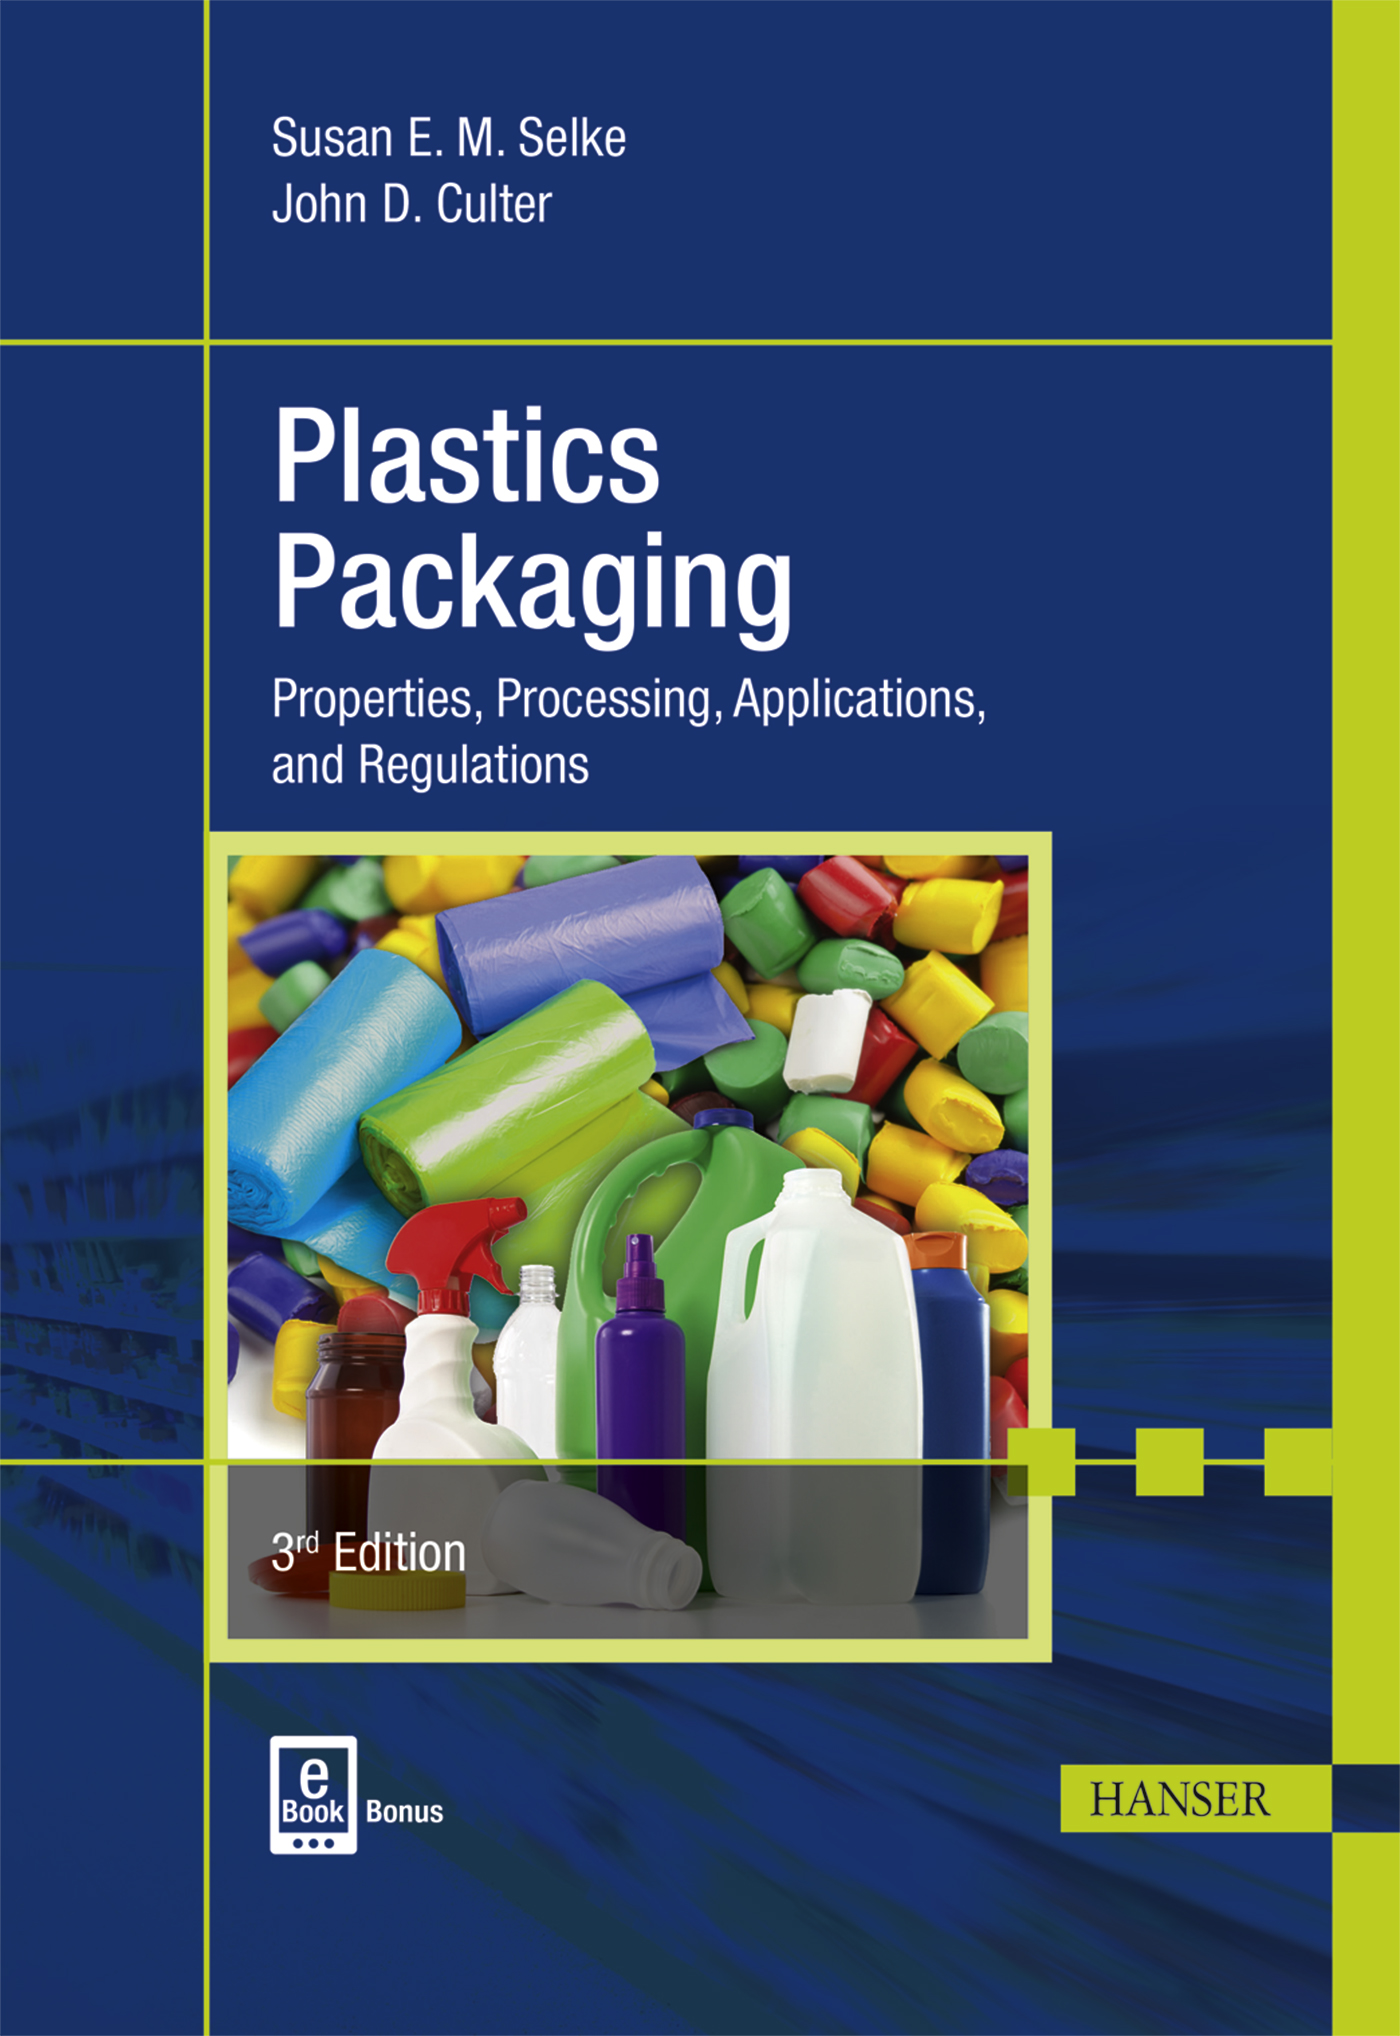 Selke, Culter, Plastics Packaging, 978-3-446-40790-9